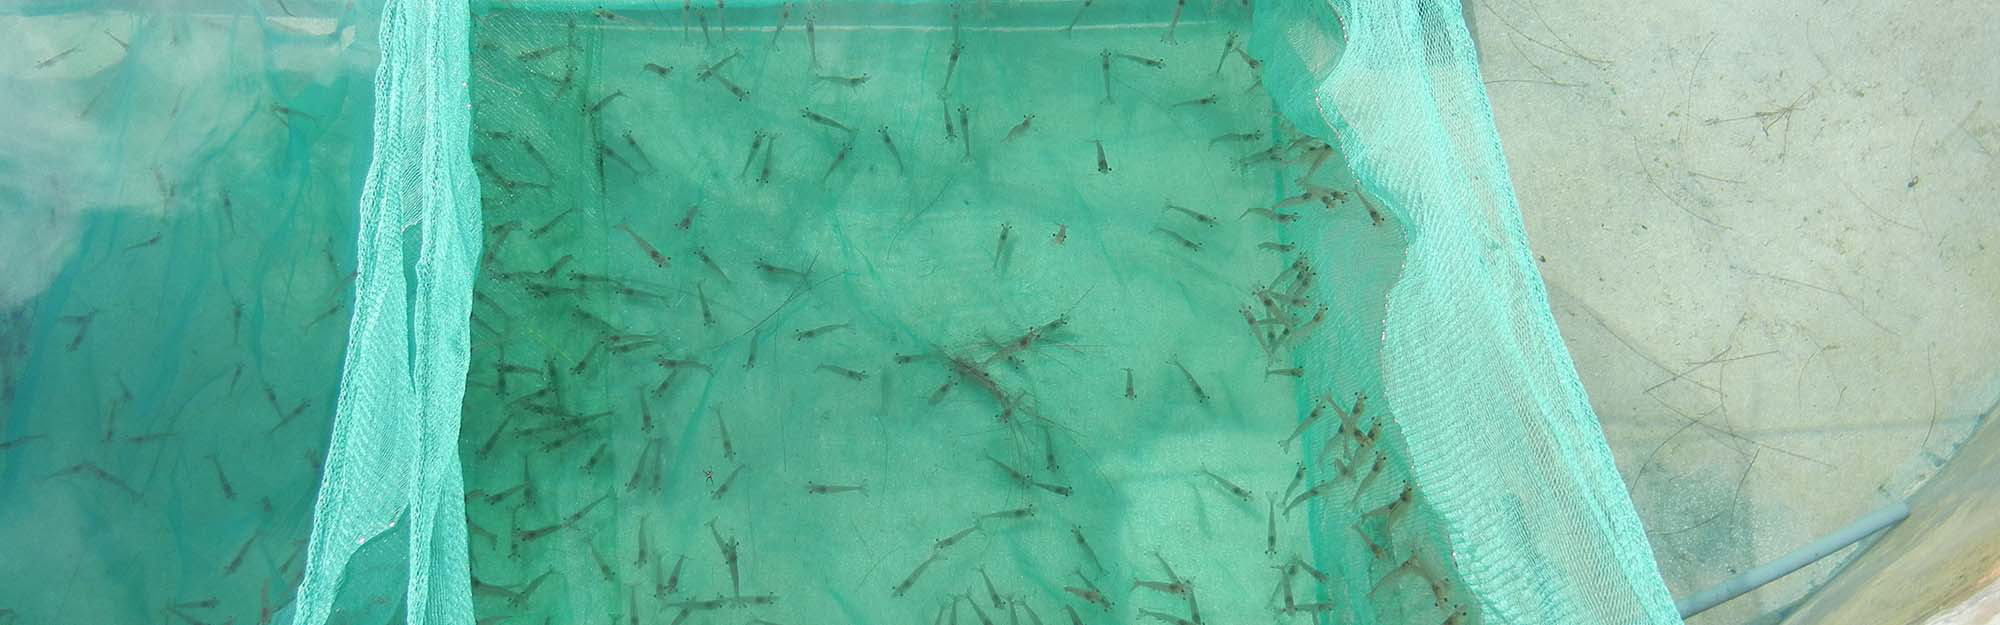 Dr. Hui Gong Jiang conducts research on shrimp families and salinity preferences.